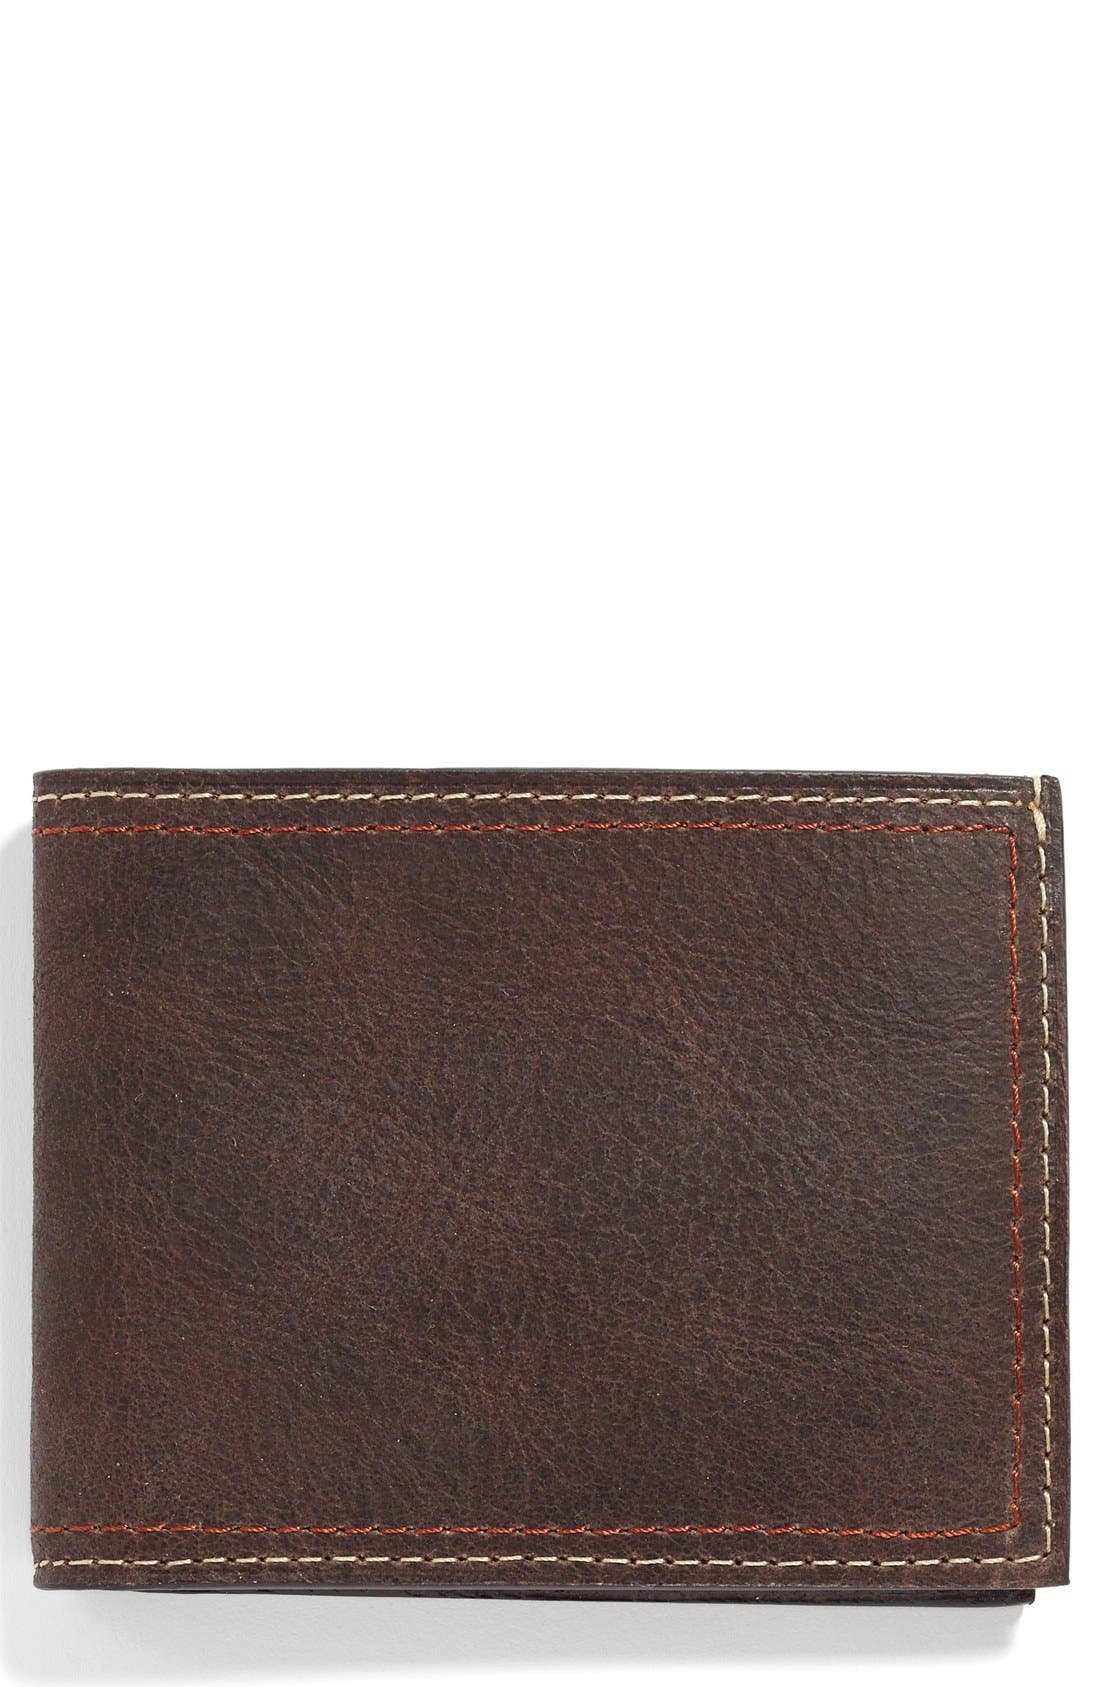 Water Buffalo Leather Wallet,                         Main,                         color, 203